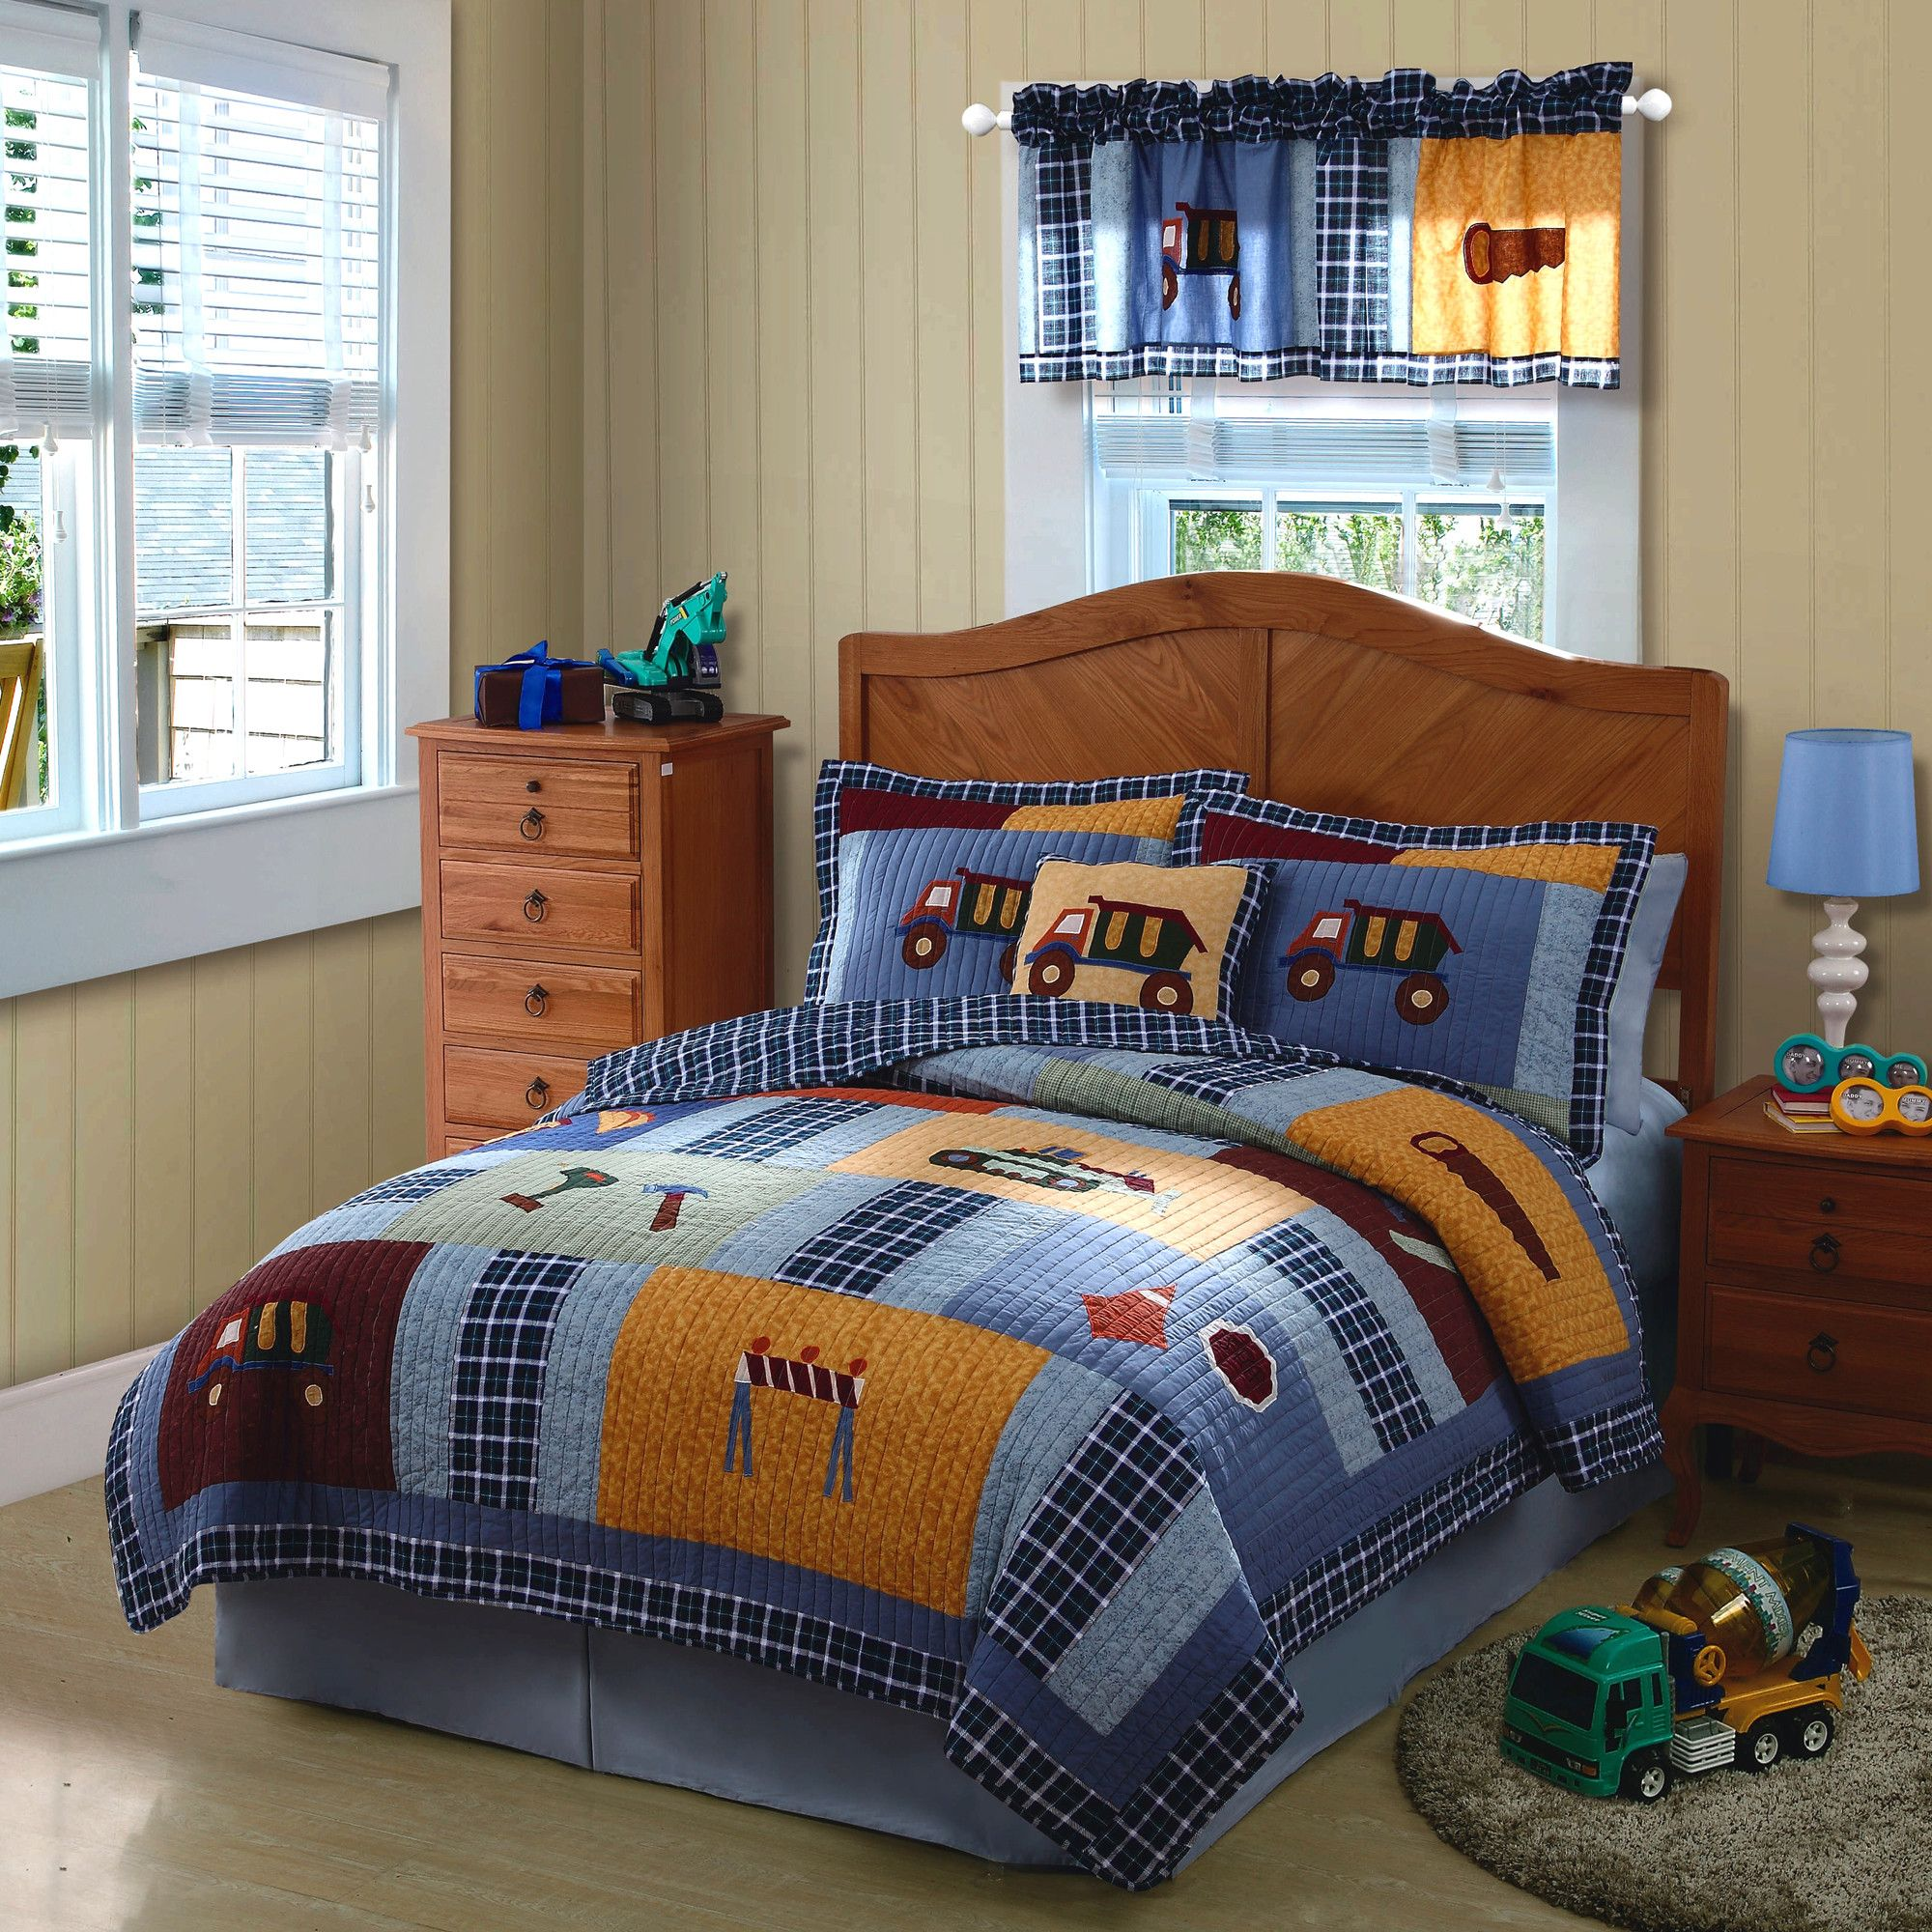 baby jelly themes quilt photos for bedding decor nursery sets best room free girl quilts patterns ideas roll furniture ja boys boy of pattern animals with